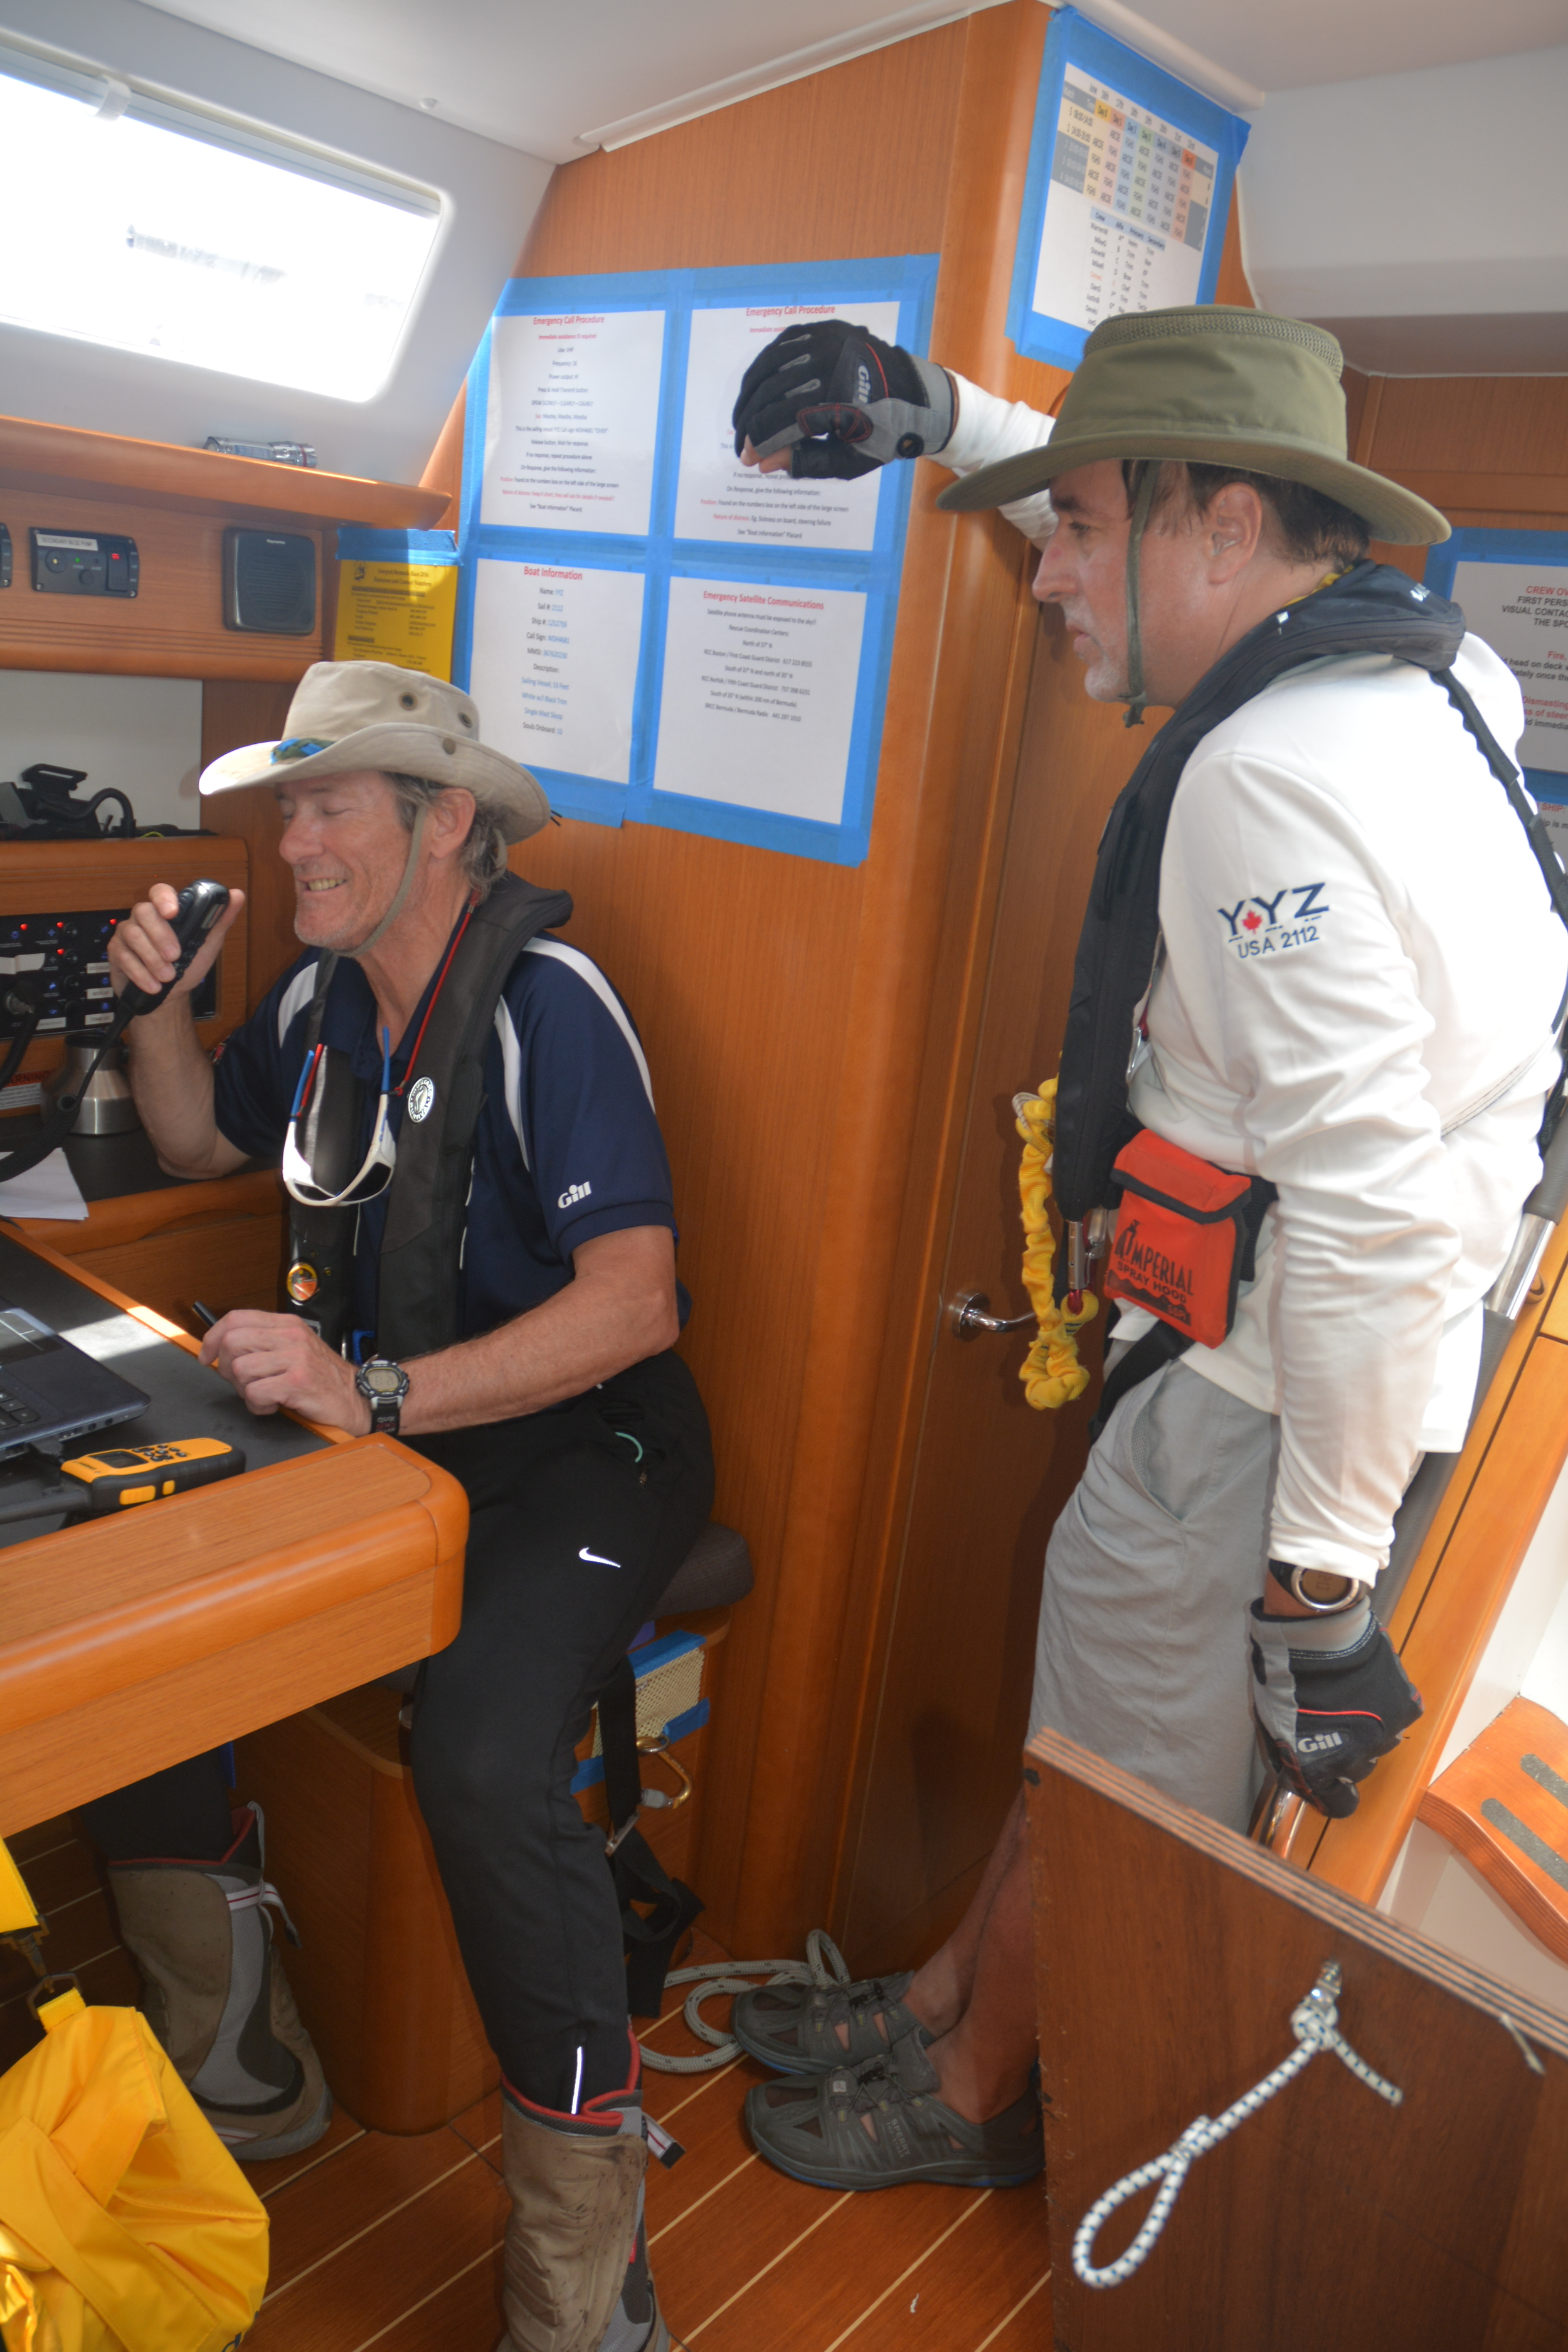 Navigator Brian O'Farrell and crewman Mike Galaty radioing in YYZ's finish